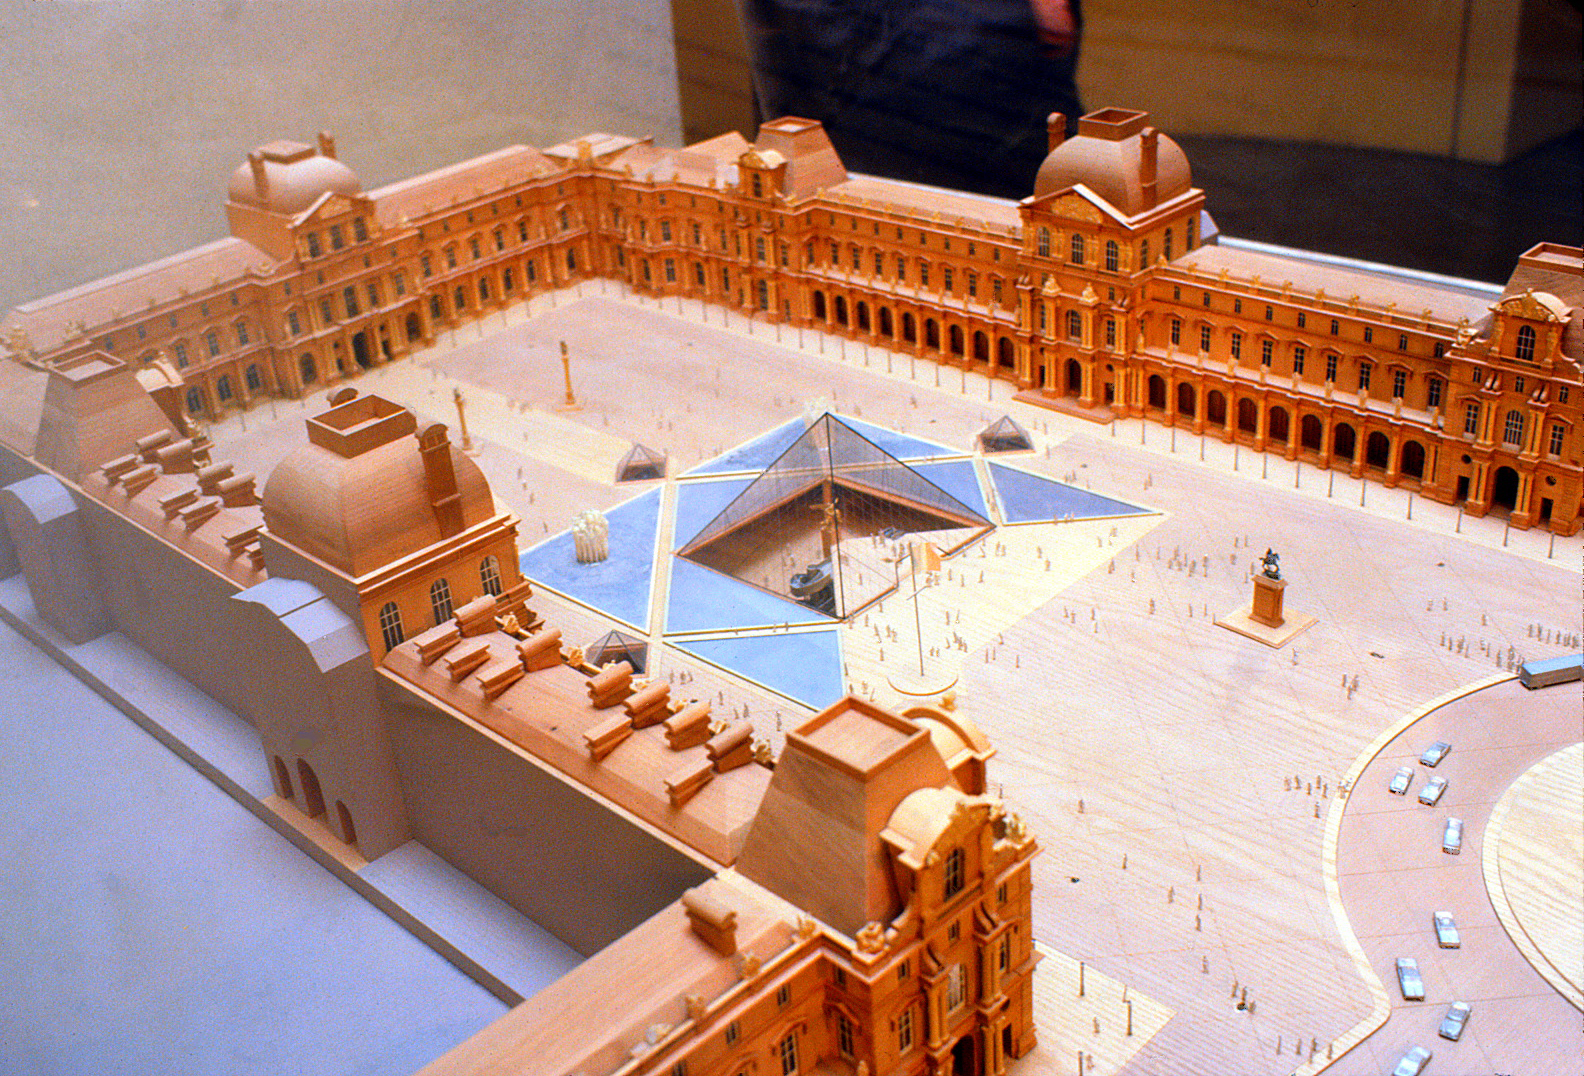 Aerial view of the model built of the Louvre Museum.